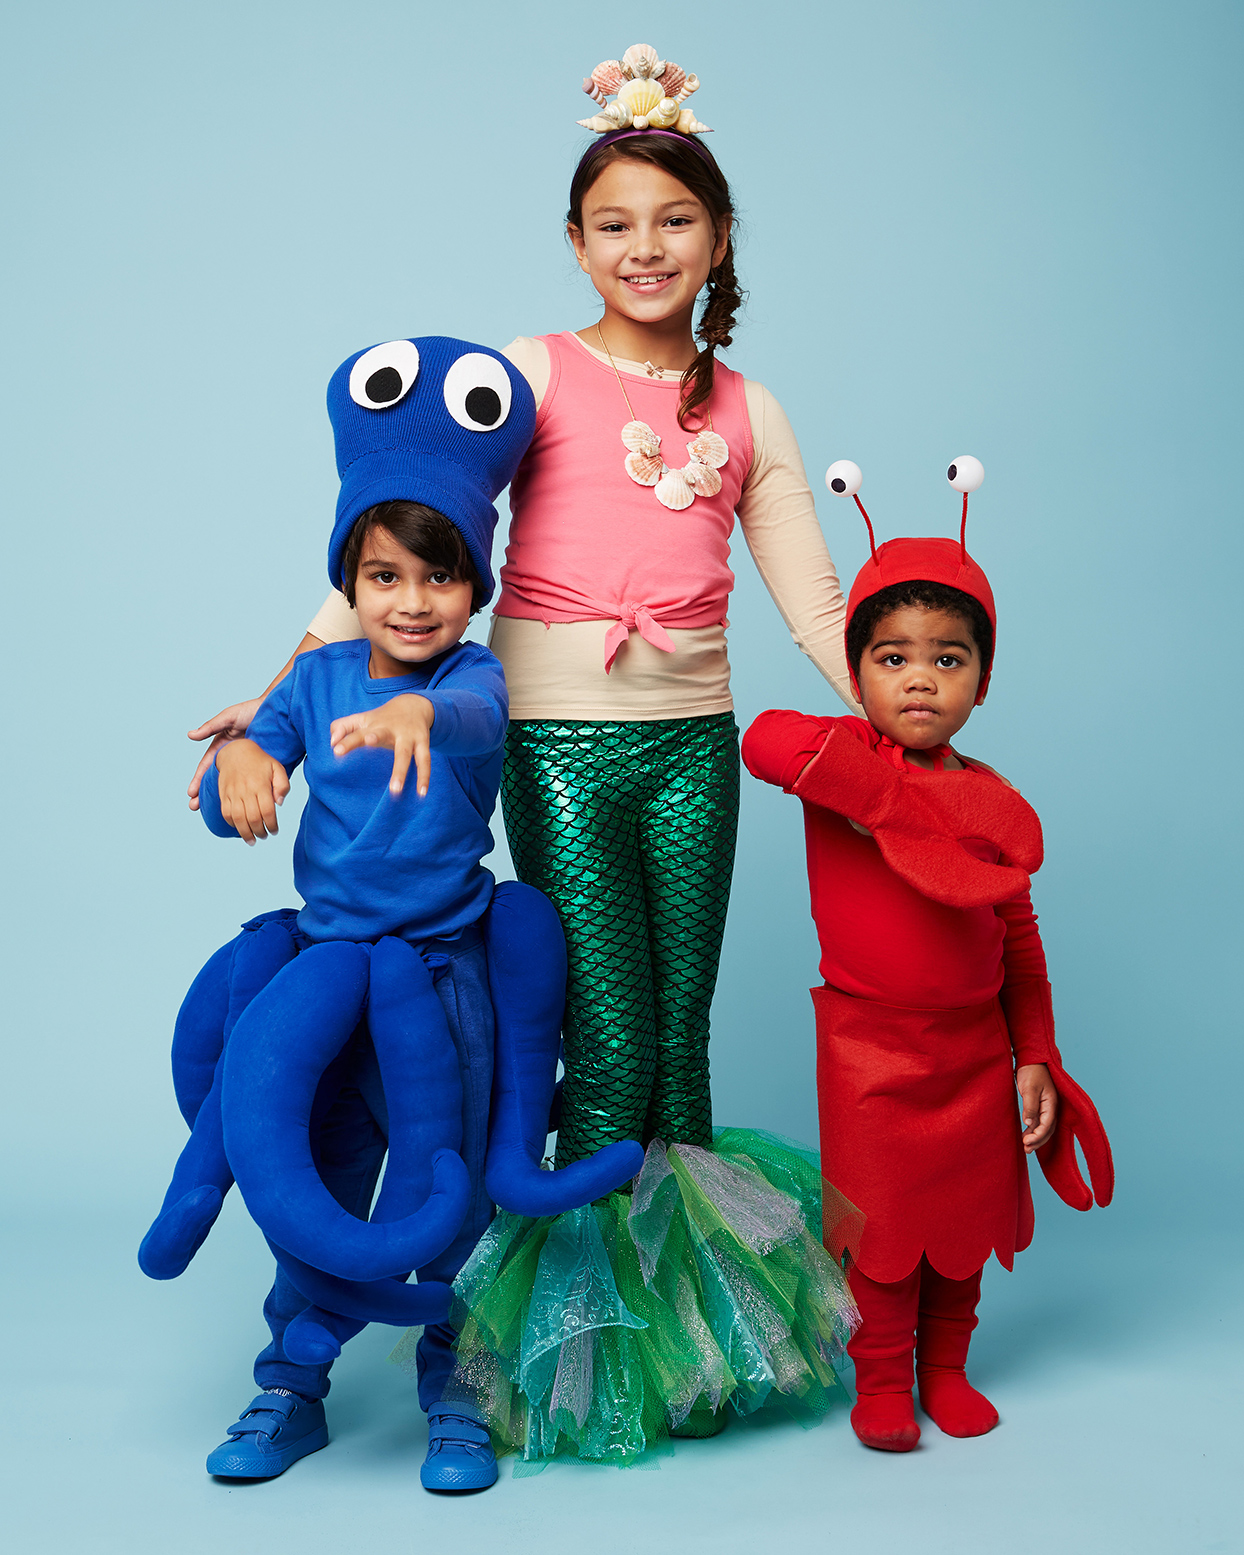 Halloween Costumes For Family Of 3 With A Baby Boy.12 Halloween Costume Ideas For The Whole Family Martha Stewart